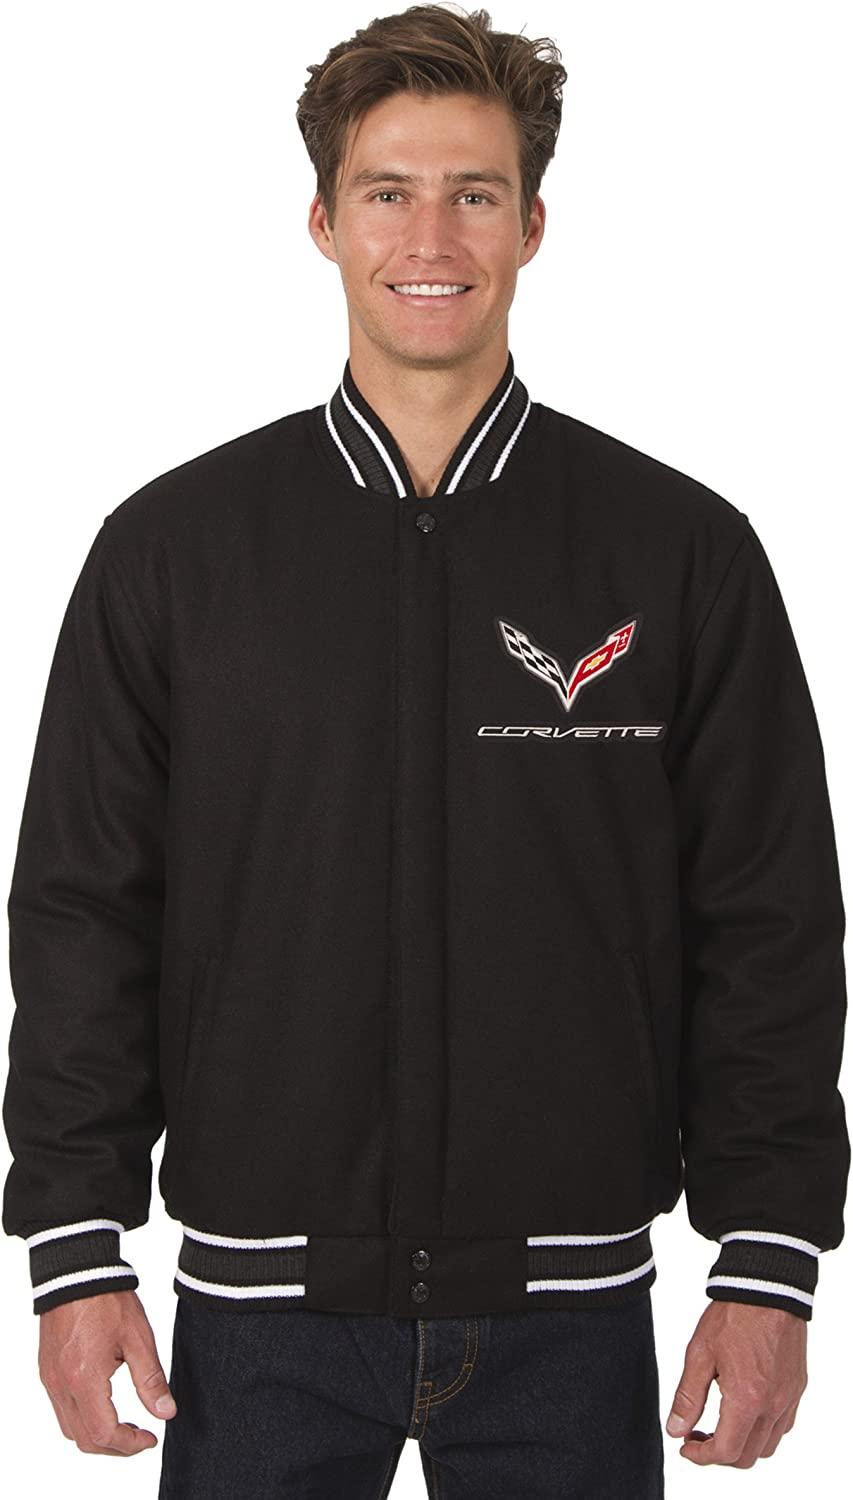 Dedication Men's Max 74% OFF Chevy Corvette All Wool Reversible with Jacket Embroidered